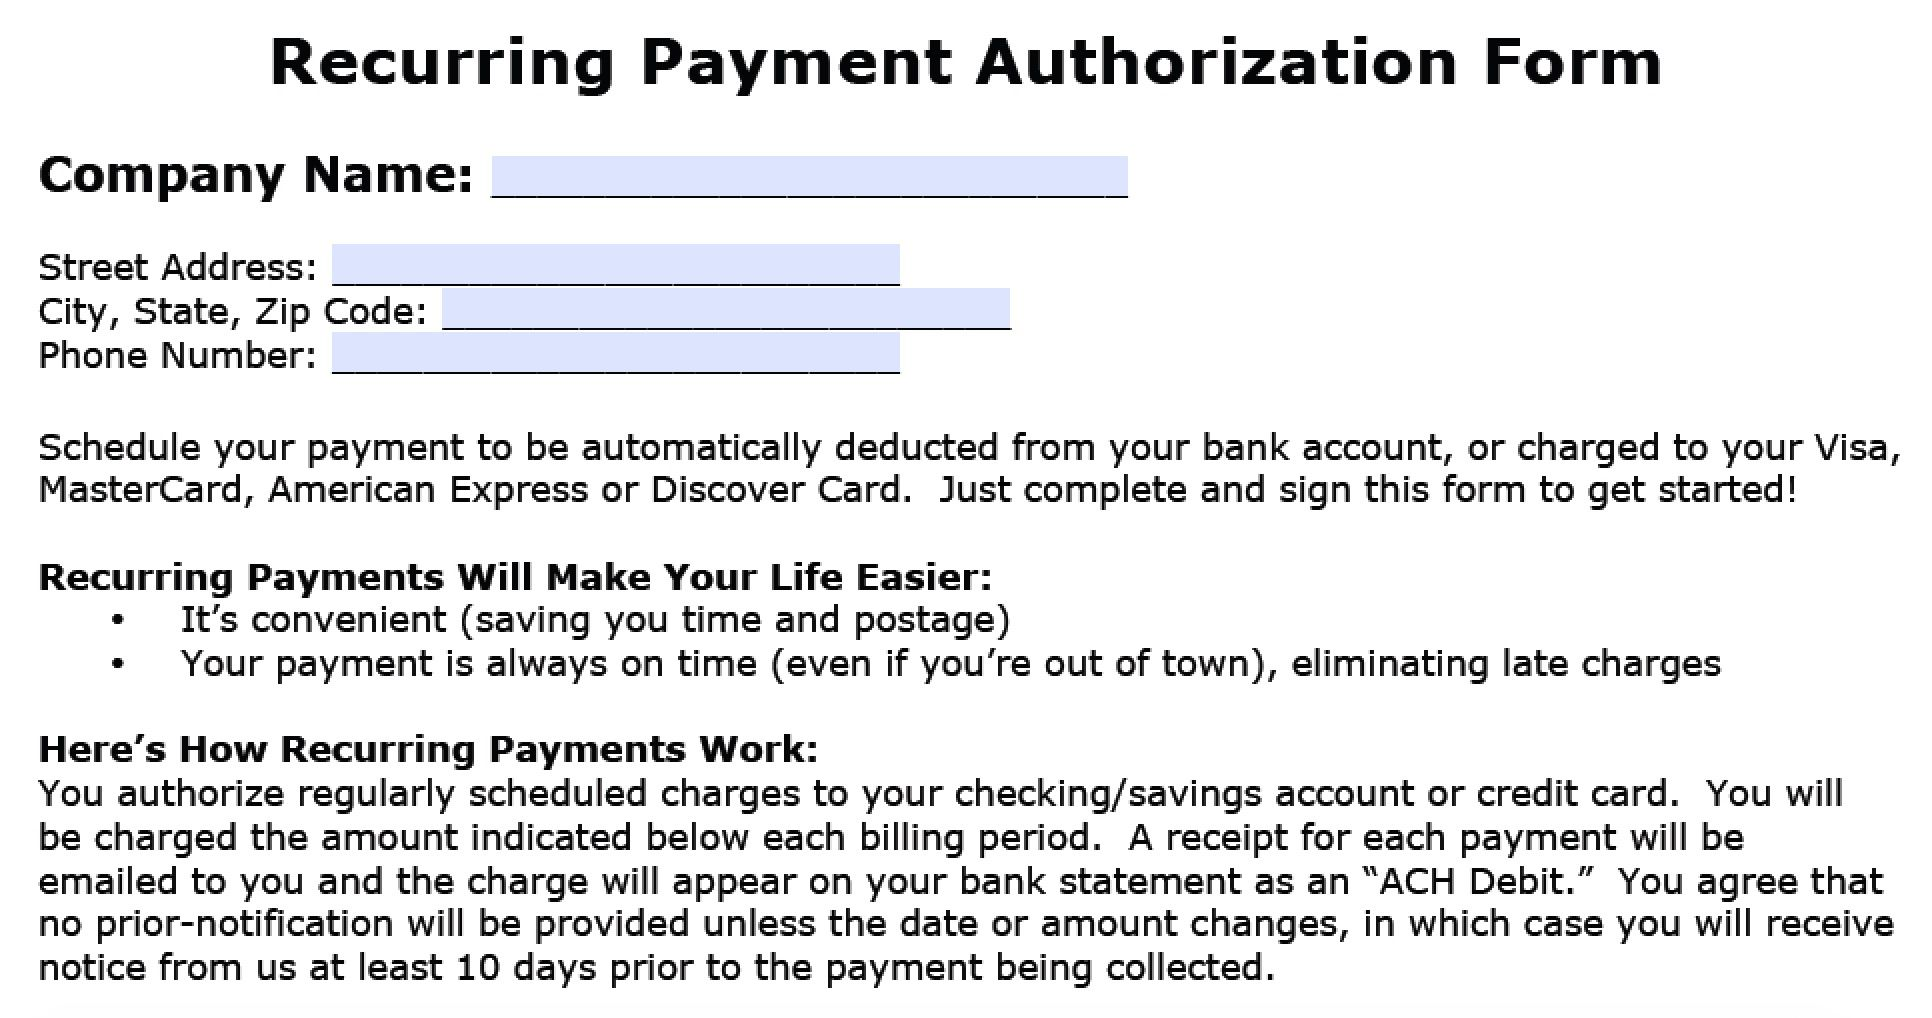 007 Stupendou Automatic Credit Card Payment Authorization Form Template Sample Full